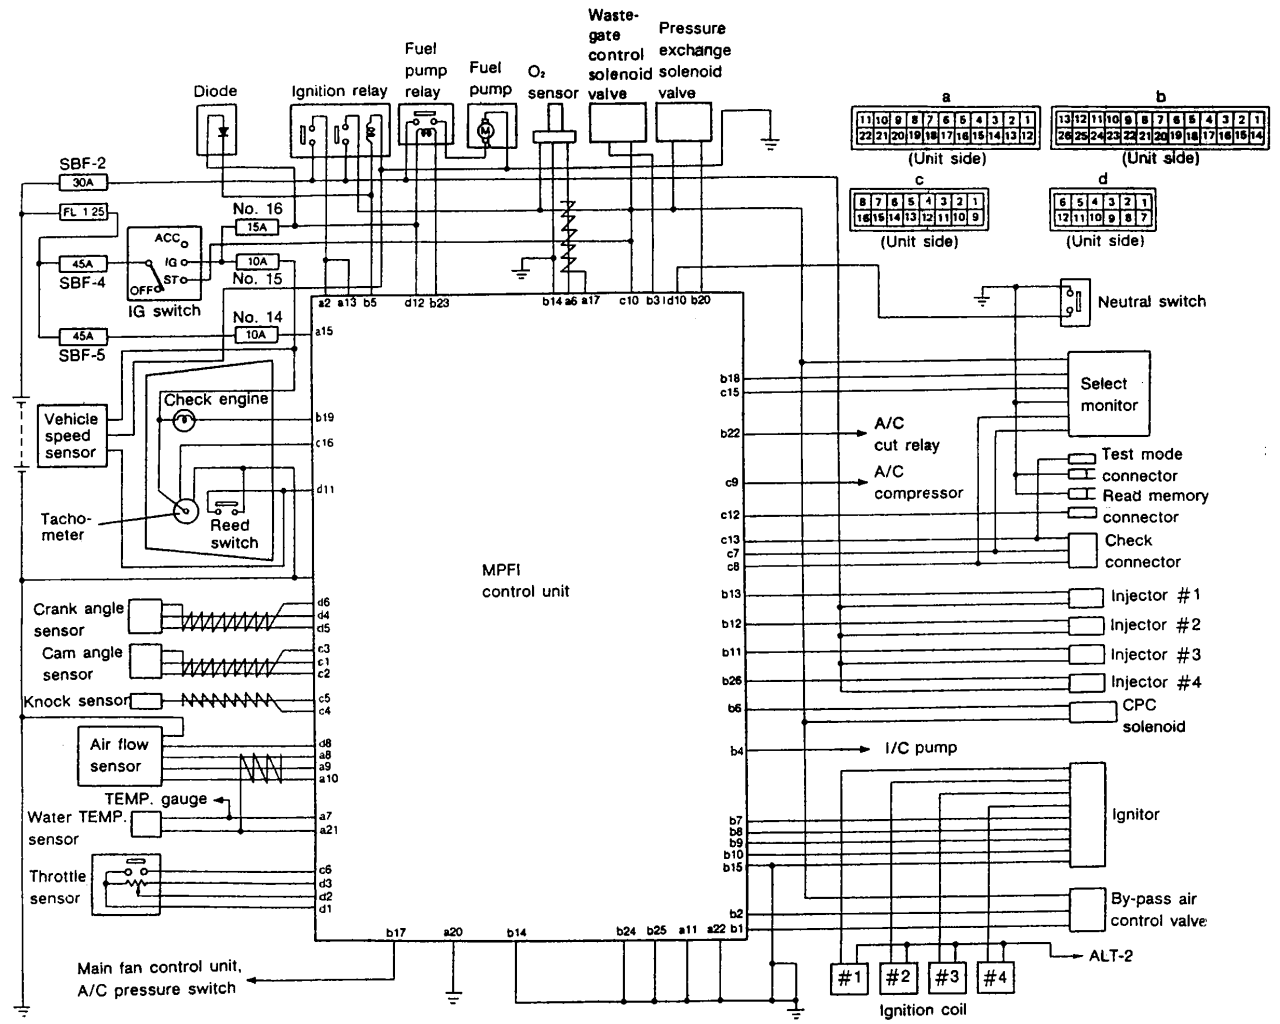 Liberty Rs Ecu on 2004 Wrx Subaru Ecu Wiring Diagram